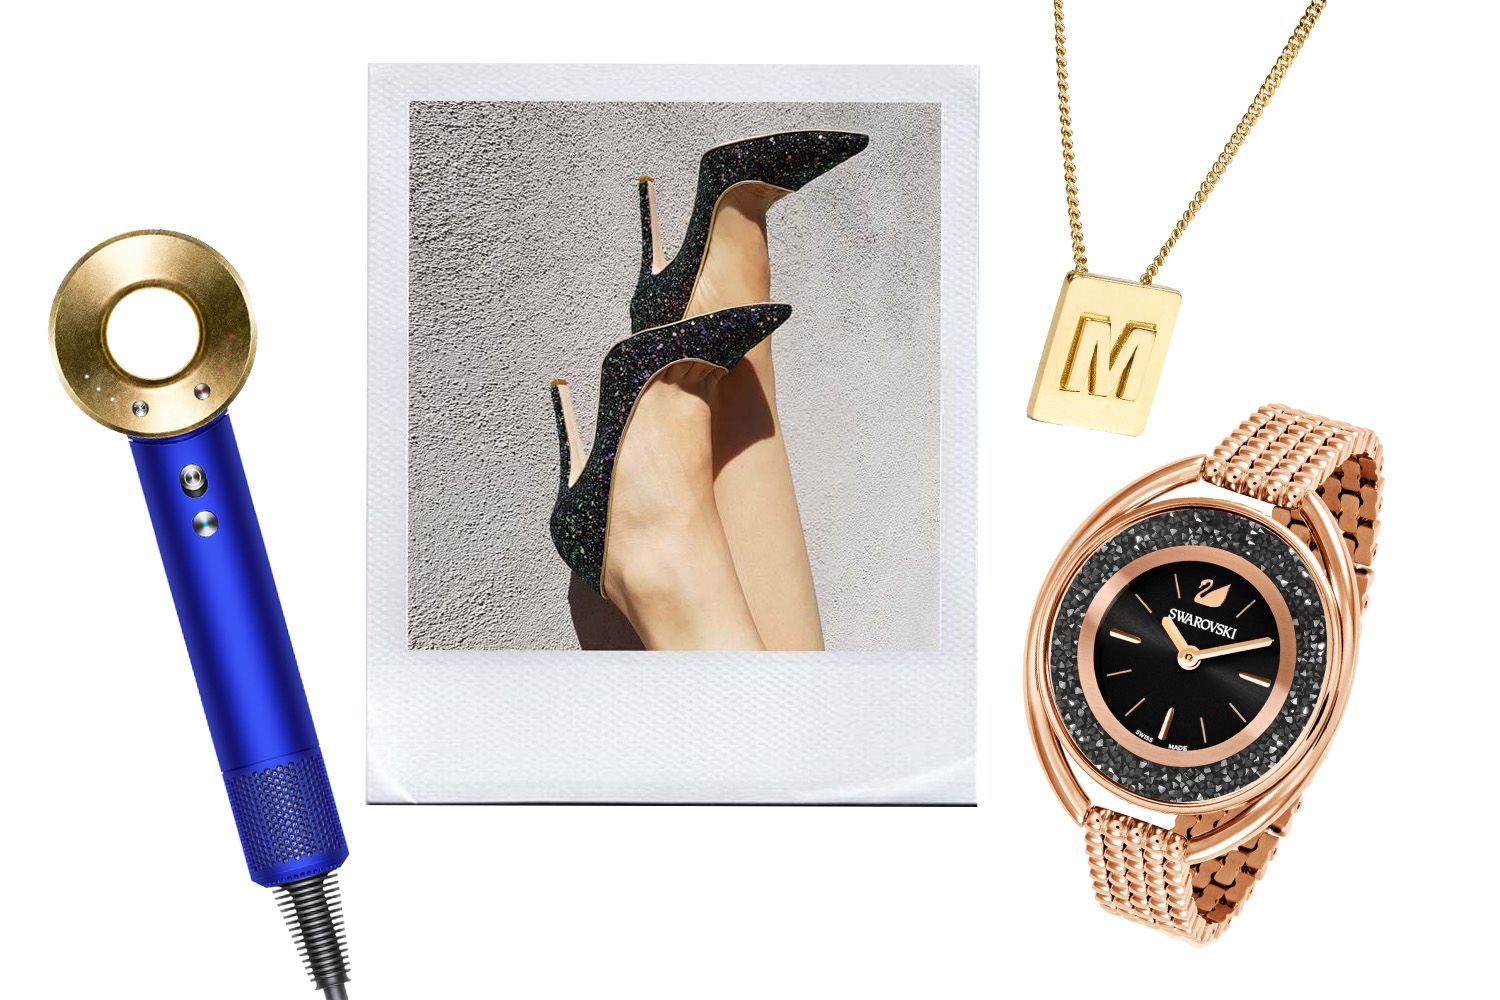 Editor's Picks: Gold Hair Dryers, Crystal Watches, Vegan Shoes And More